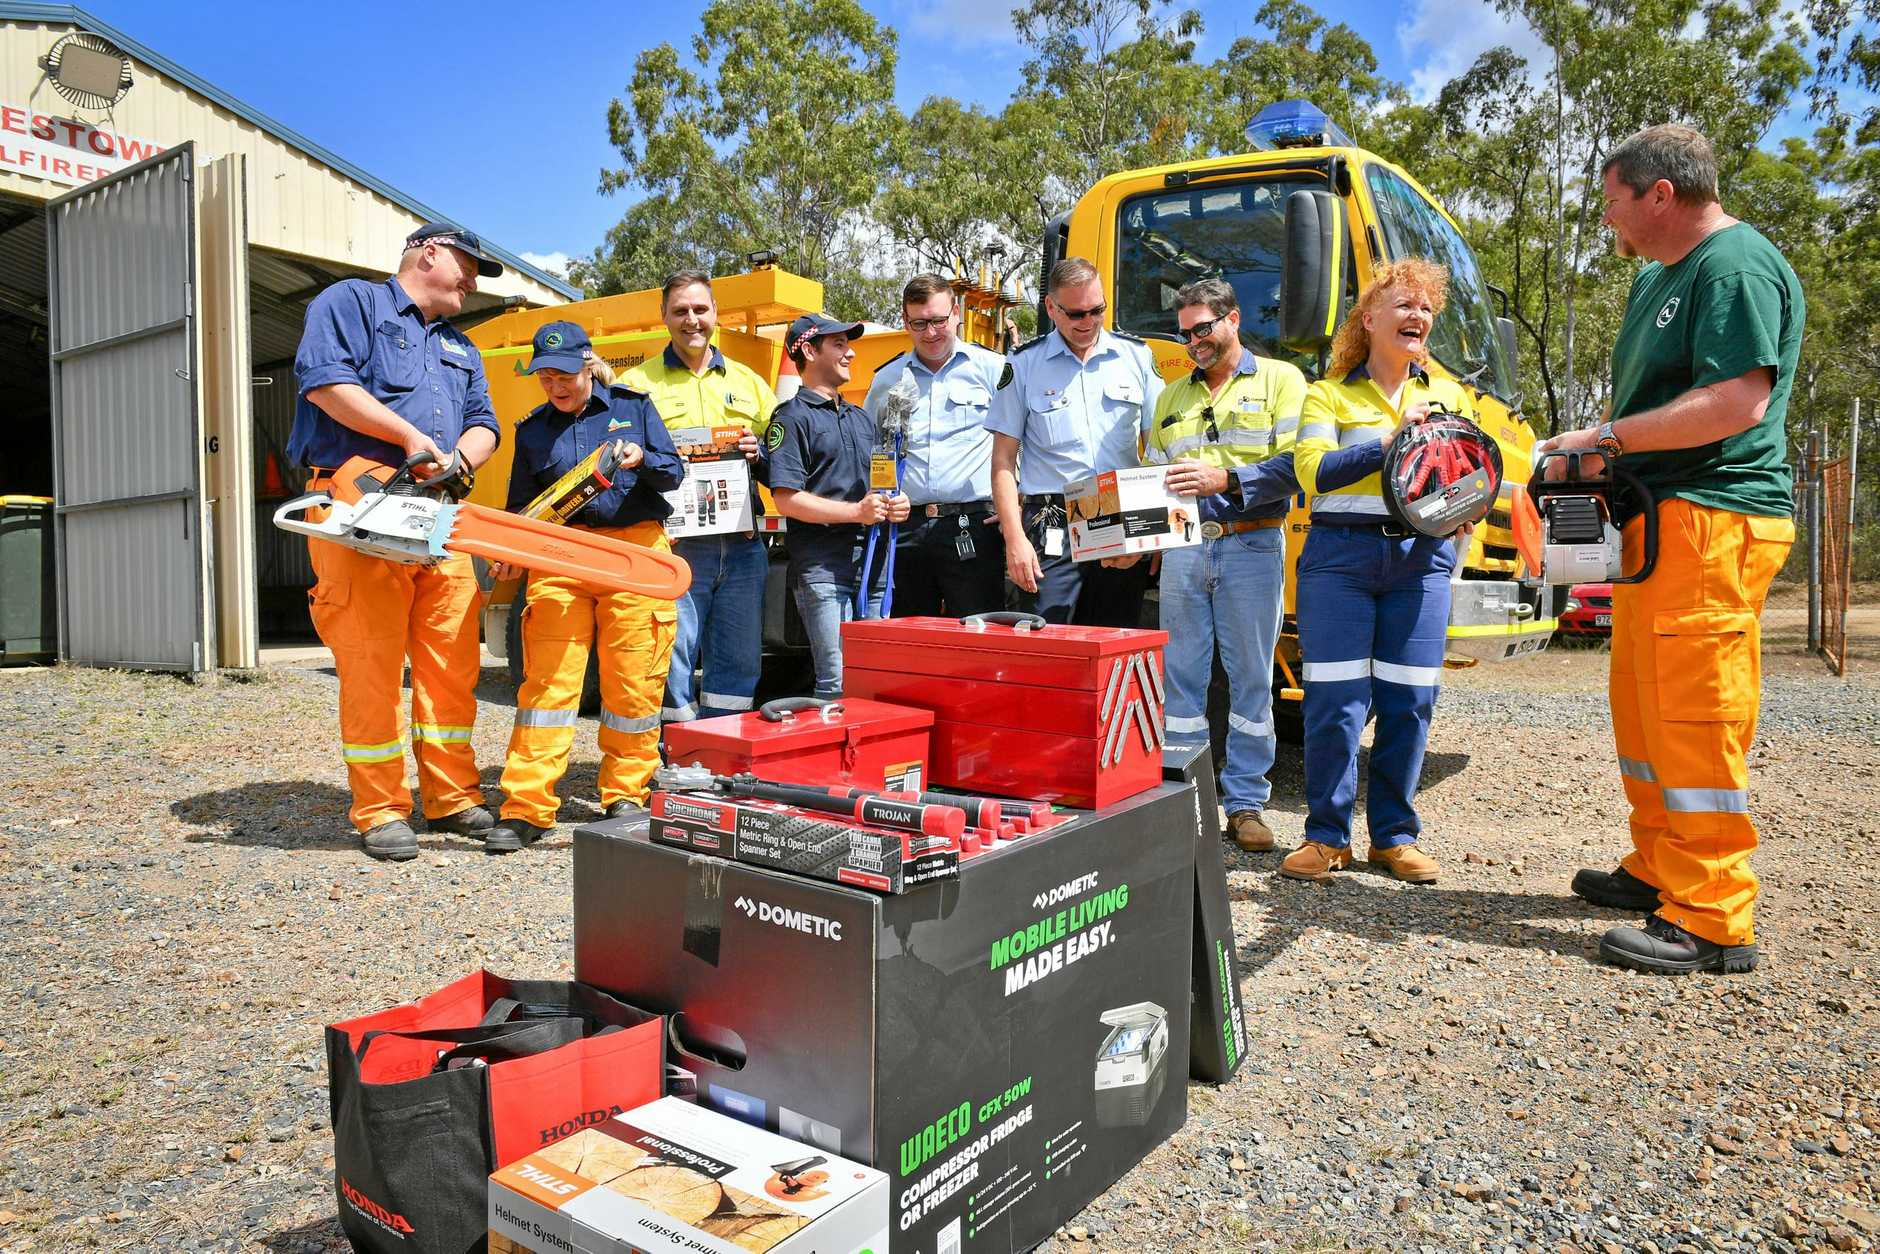 FIRIES SUPPORT: Orica employees and Yarwun fire-fighters going over donated equipment after Westowe Fire Station was broken into recently. Pictured are Danny Devers, Kerrie Darrach, Dewald Herman, Jamie Lea, Daniel Schneider, Craig Magick, Paul Shannon, Suzie Lane and Wayne Hoffman.